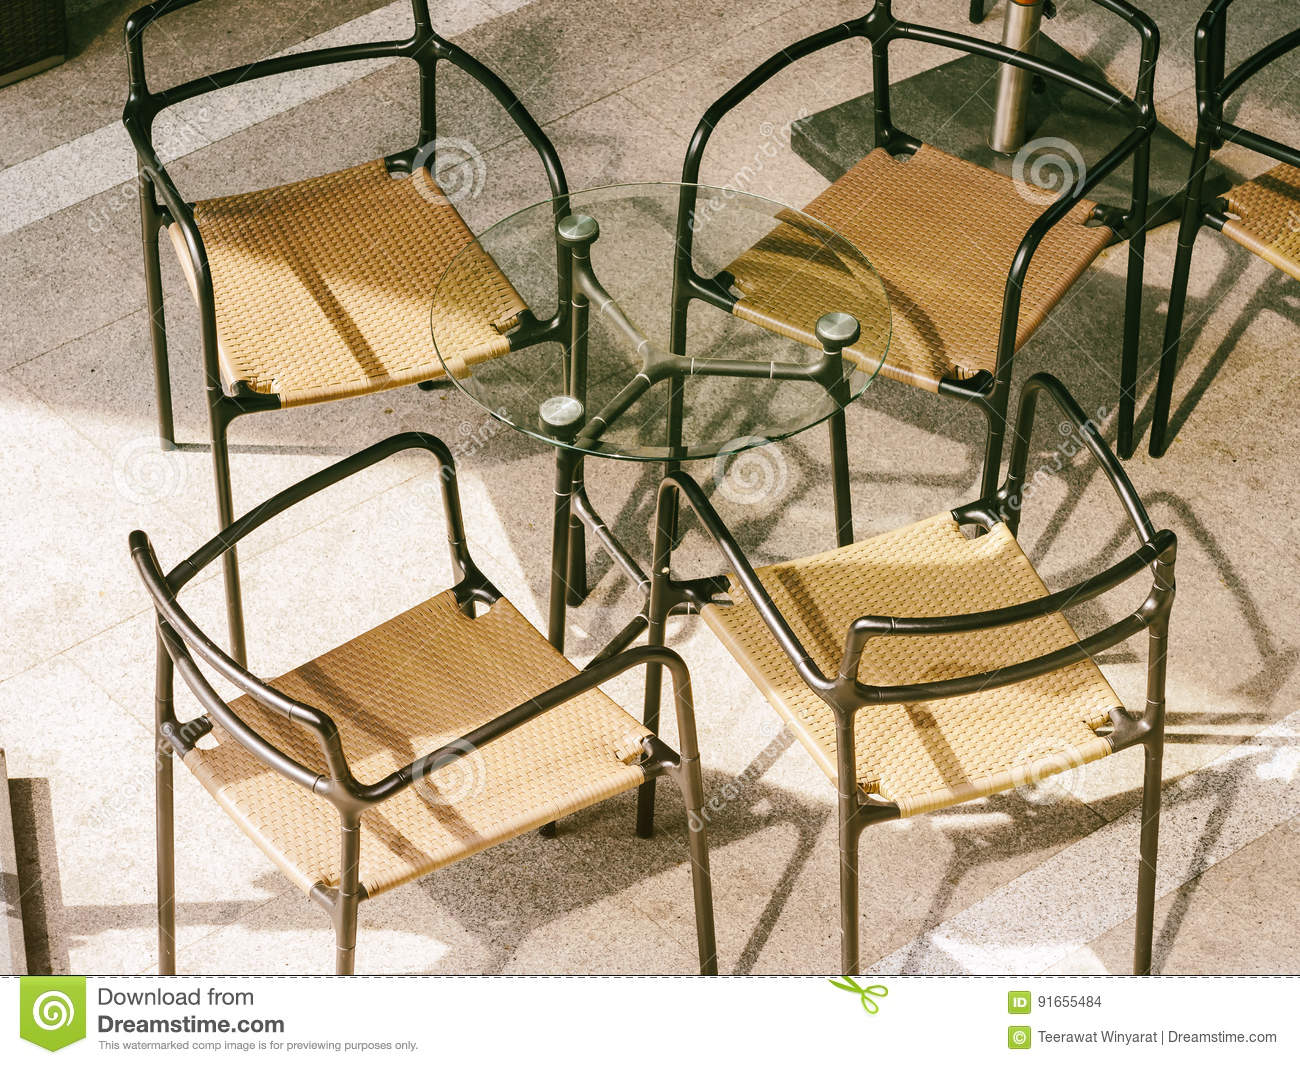 Table And Chairs Seats Cafe Restaurant Stock Photo - Image of ...